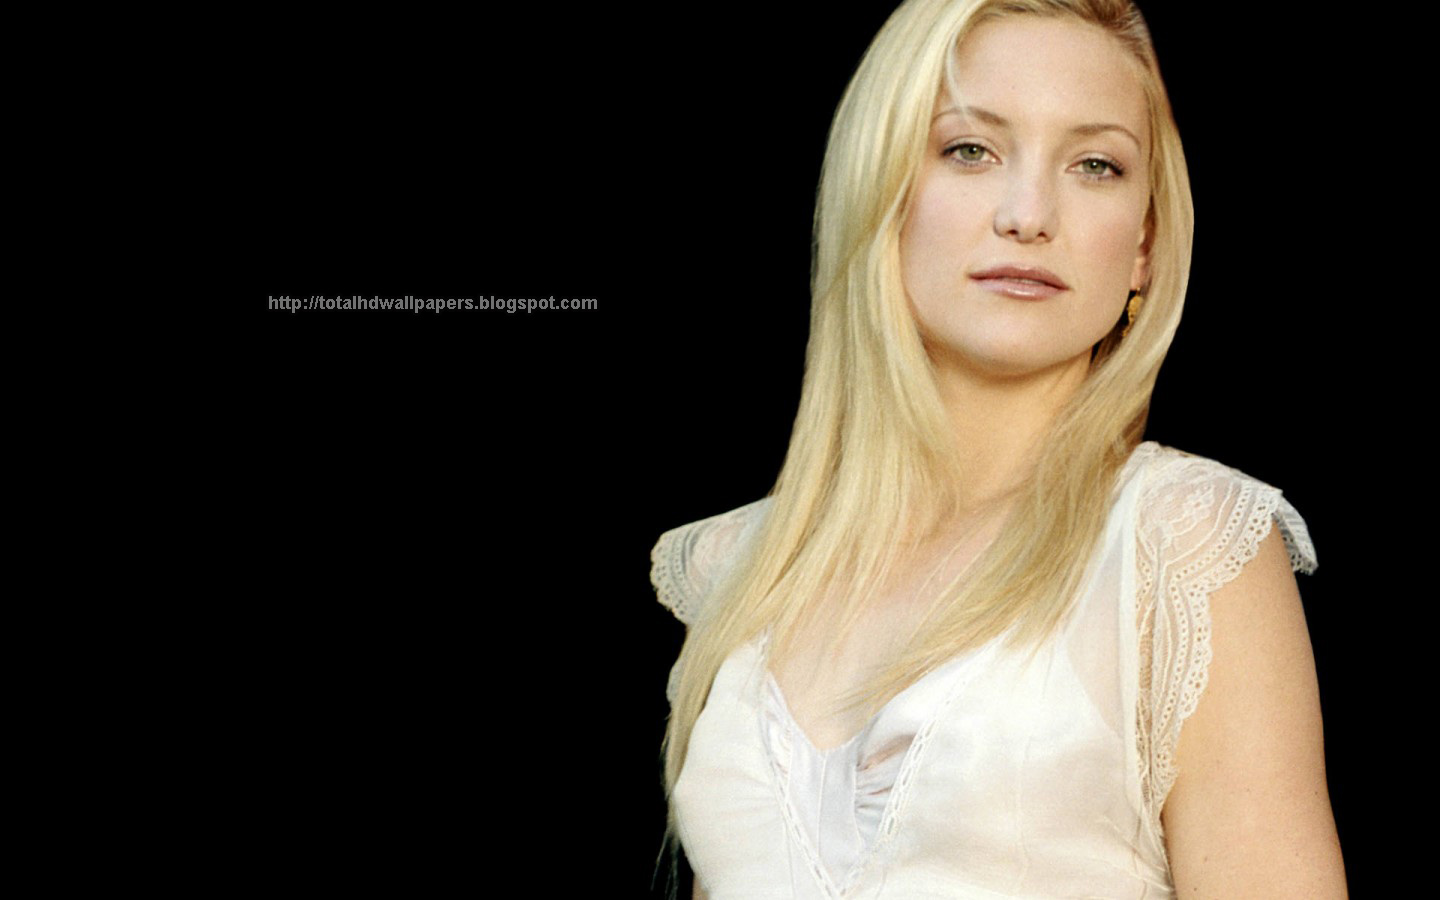 Wallpapers Hollywood Actress HD Wallpapers Kate Hudson HD Wallpapers 1440x900